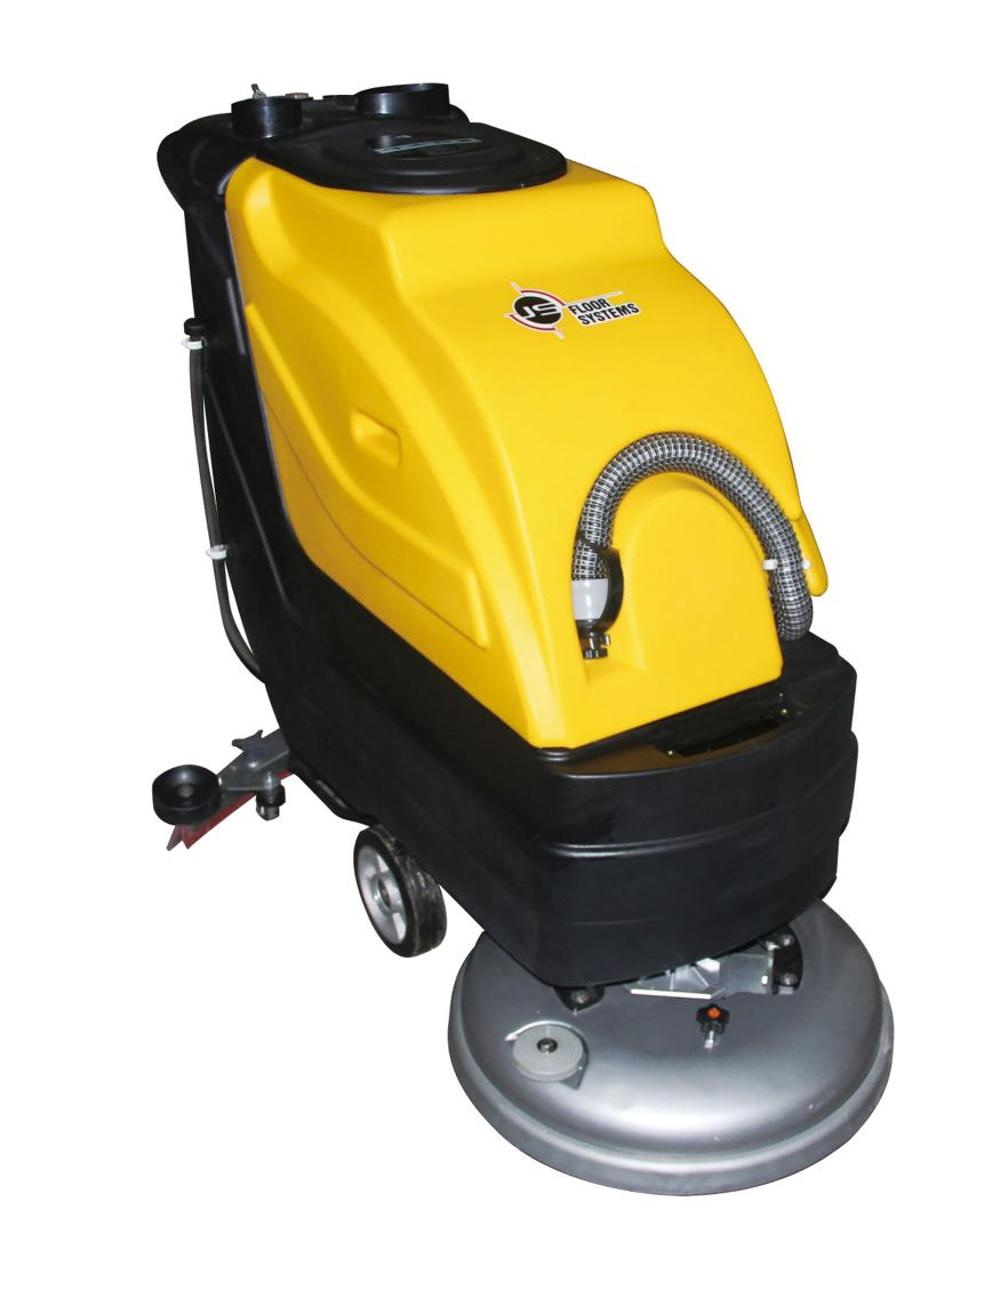 C5 Model Battery Walk Behind Electric Floor Scrubber Sample